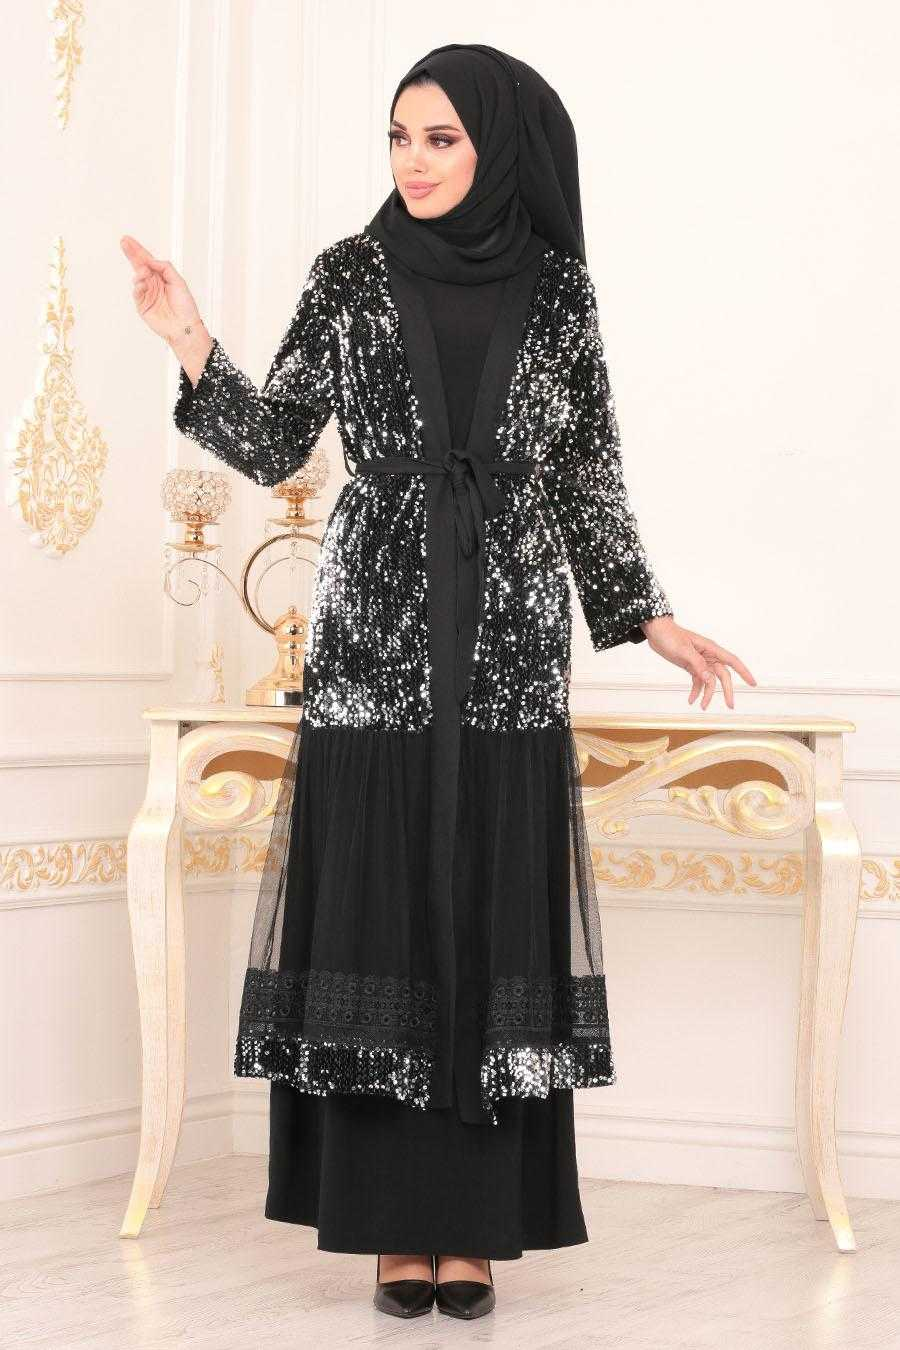 Nayla Collection Tesettür Tül Abaya Modelleri